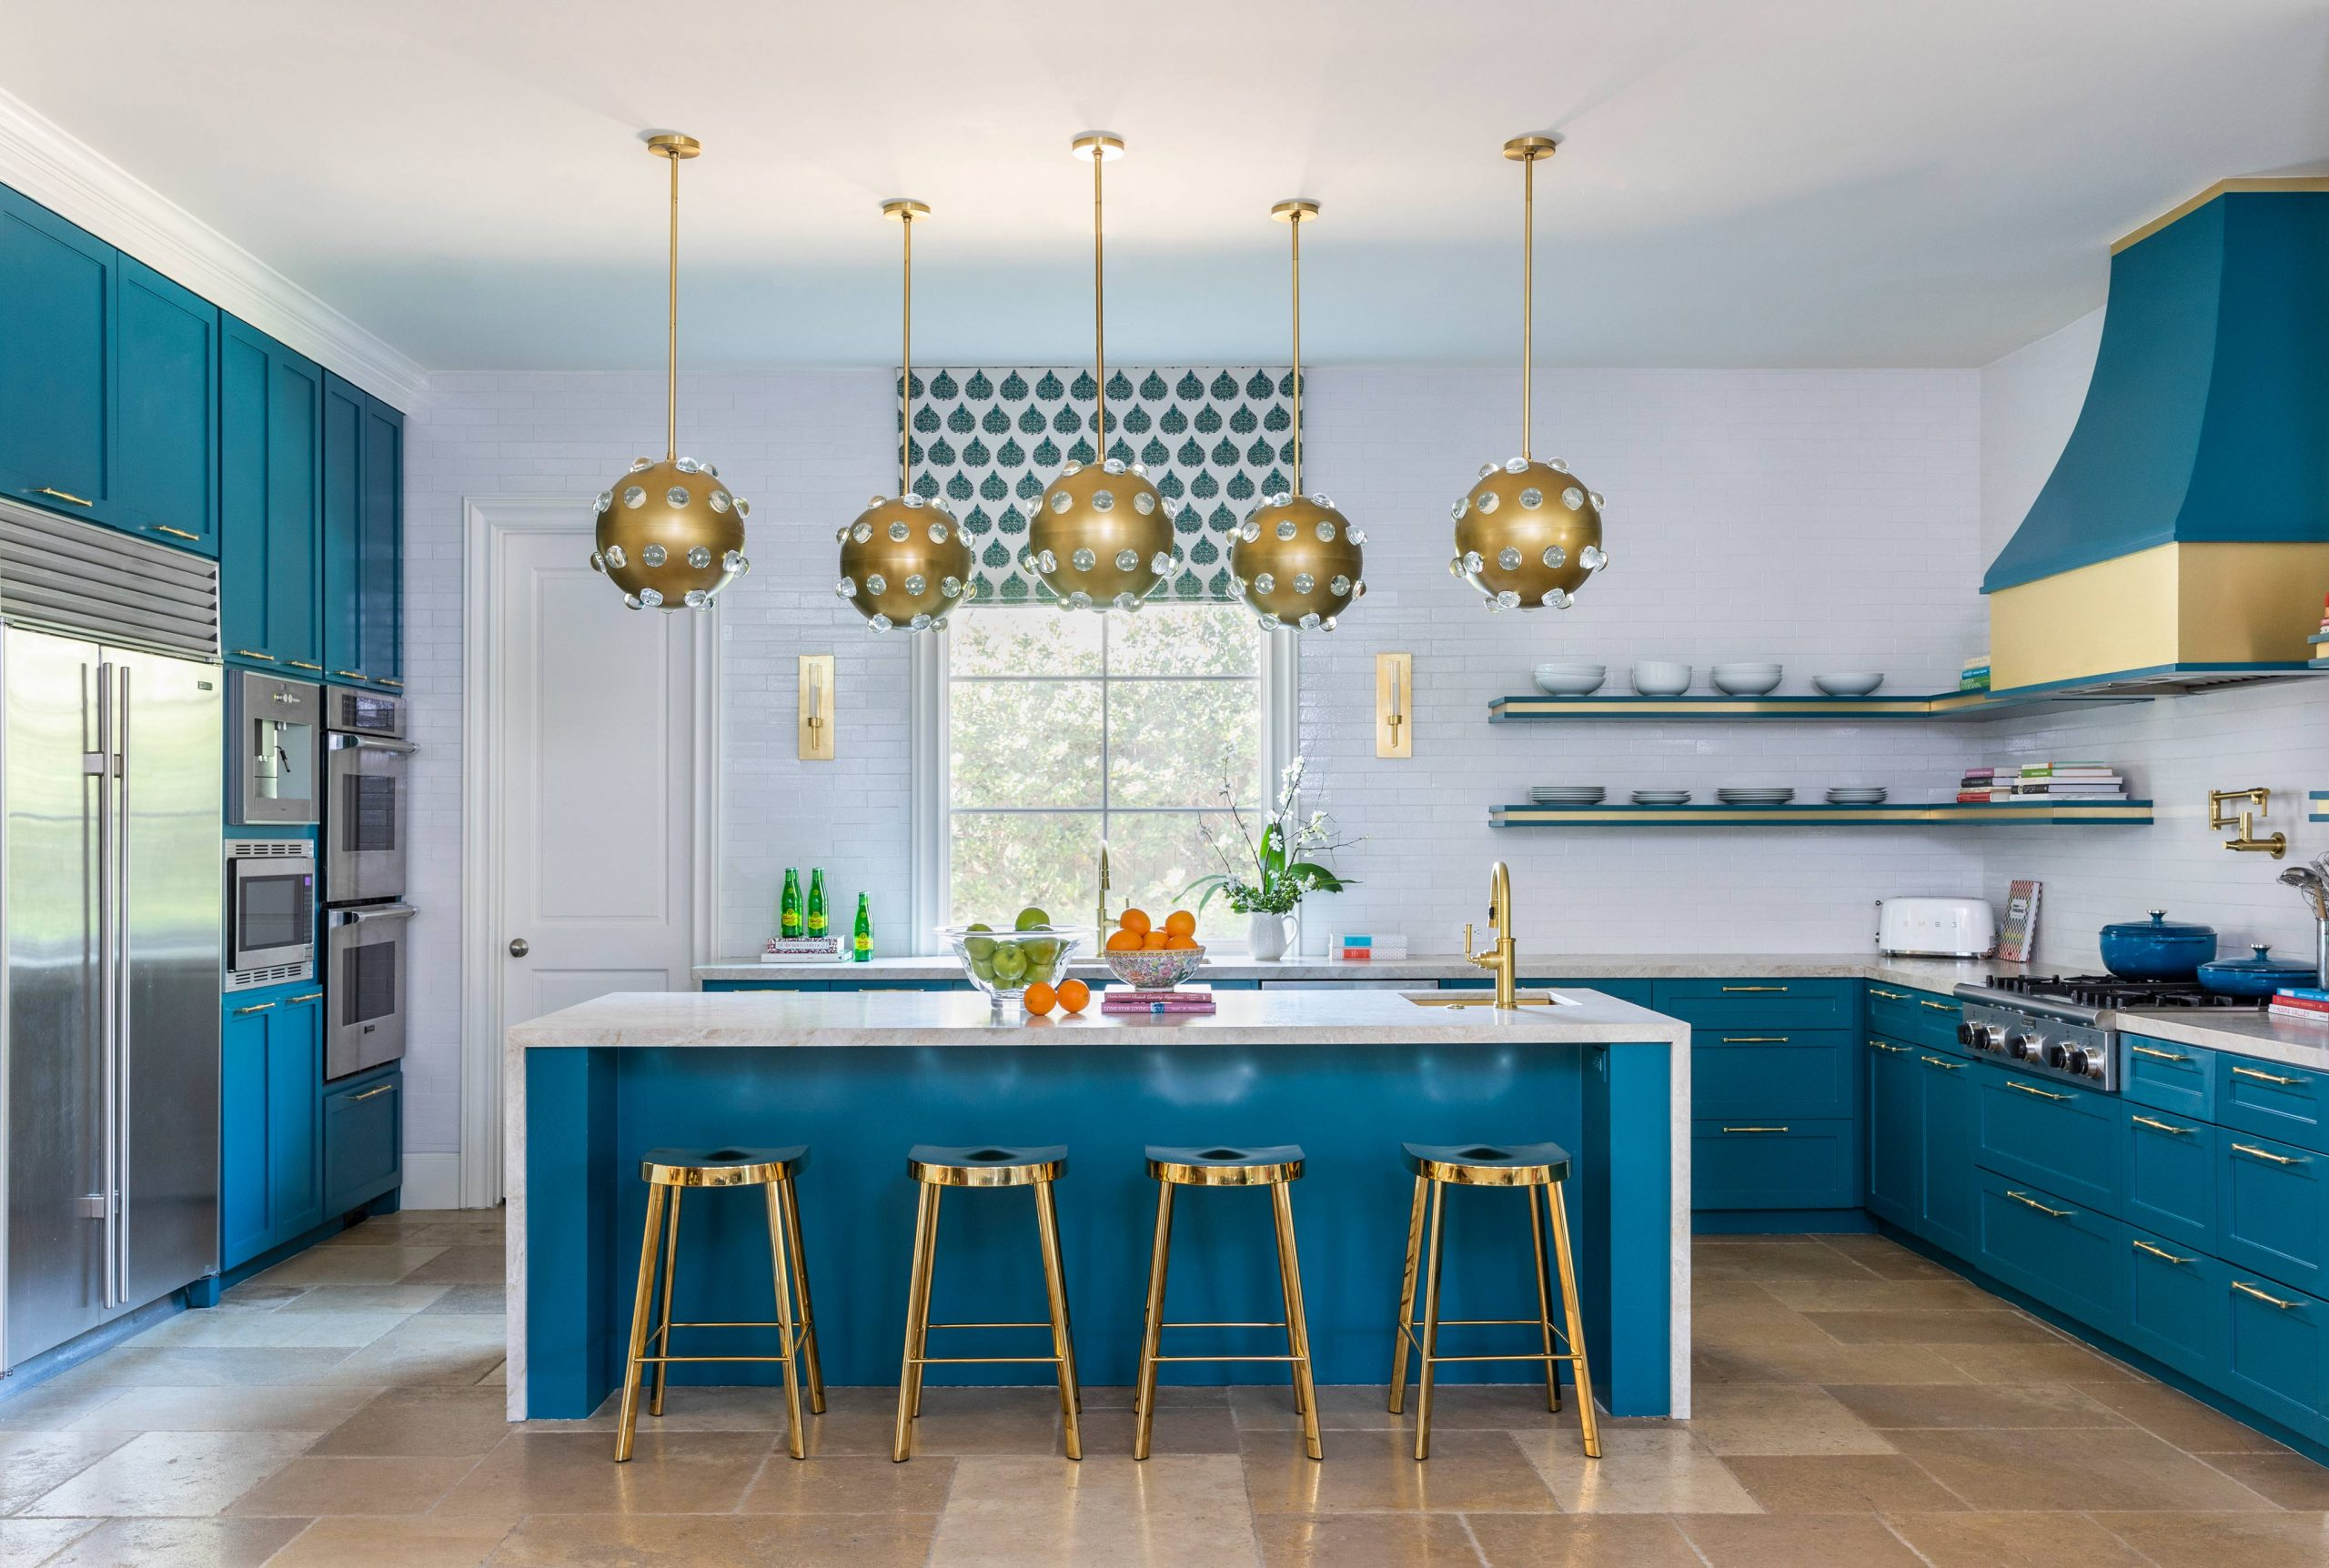 blue and white kitchen with brass finish - Creative Tonic